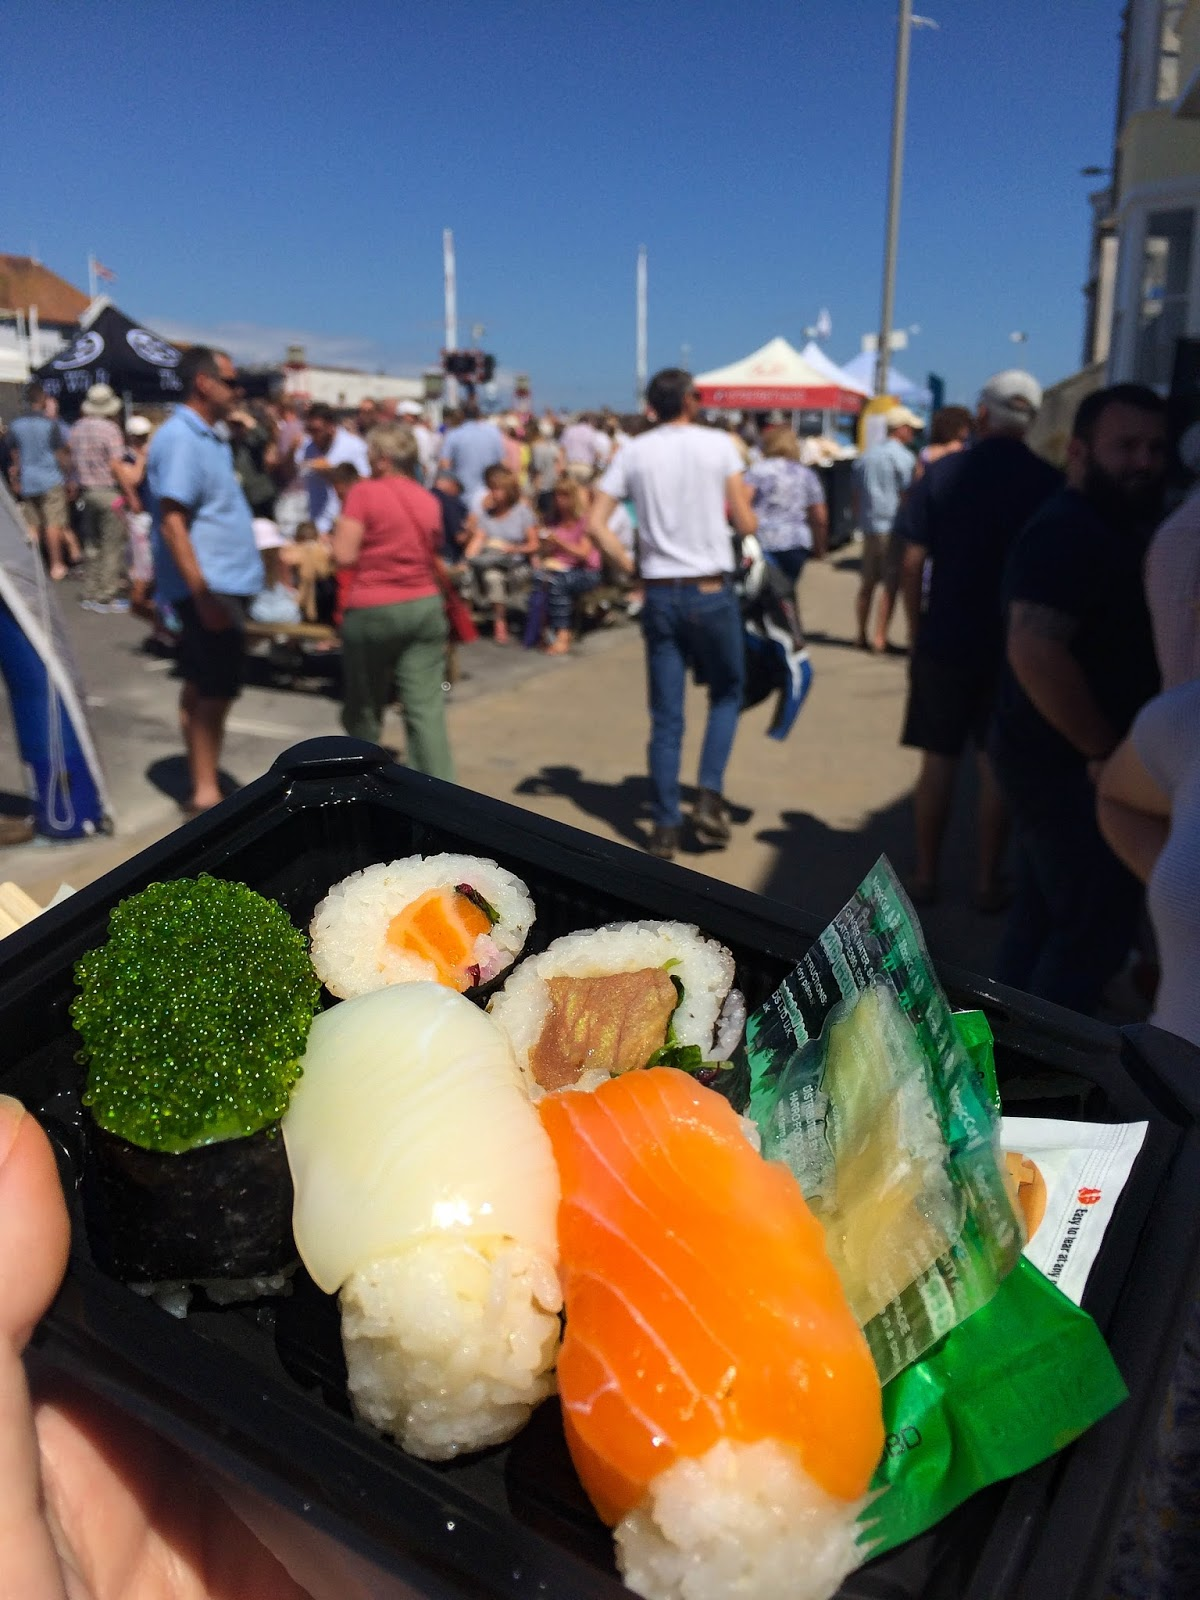 Pommery Dorset Seafood Festival in Weymouth, sushi, street food, food bloggers, lifestyle bloggers